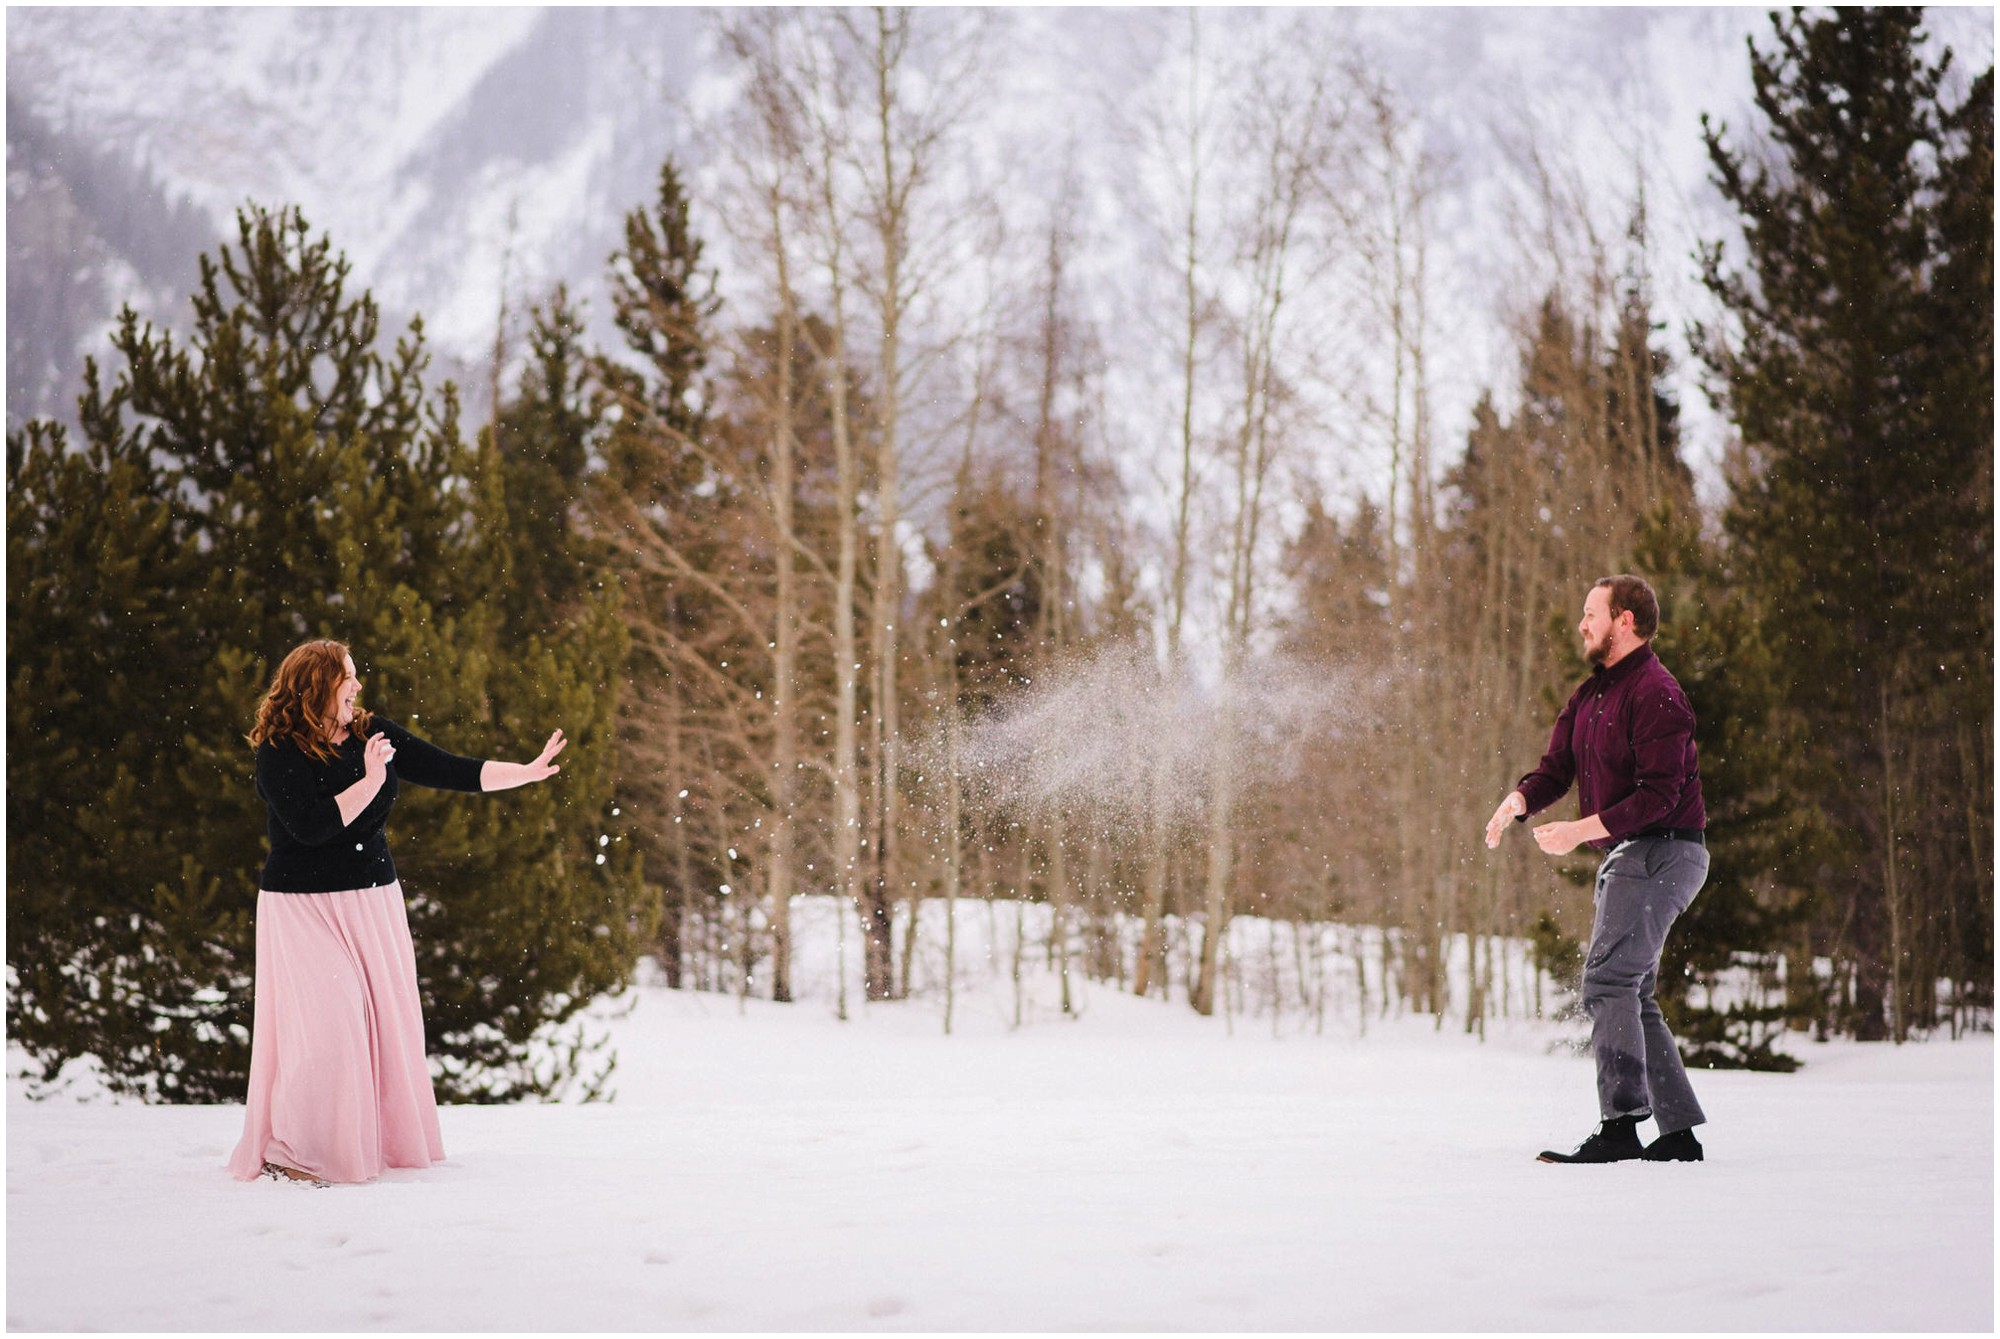 170-Copper-mountain-winter-engagement-photography.jpg